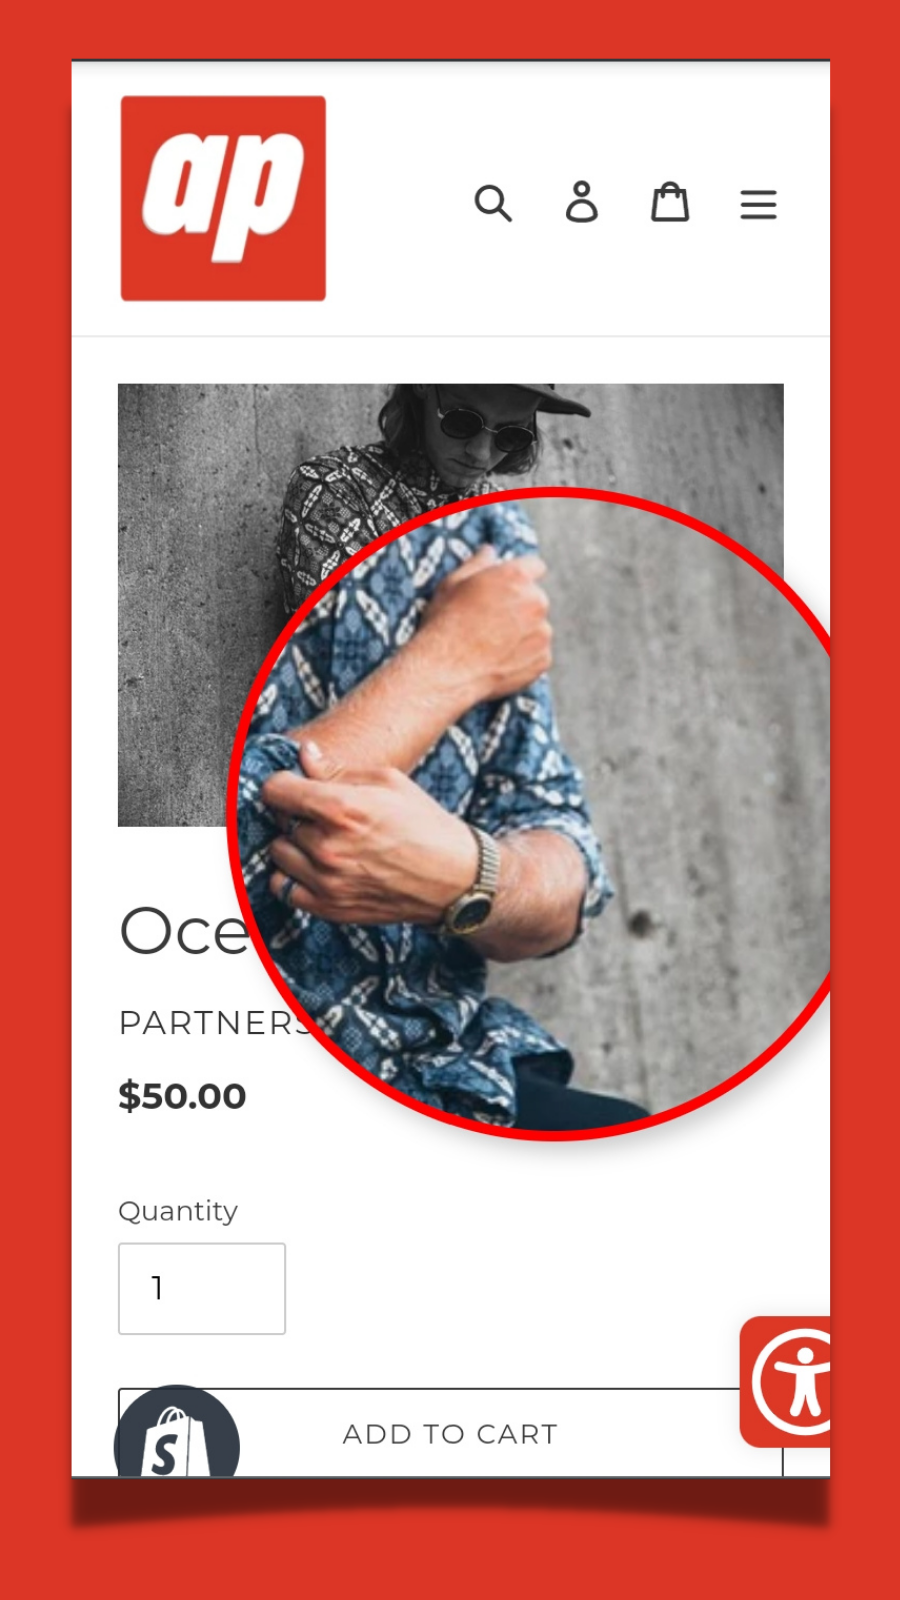 Product Page View On Mobile